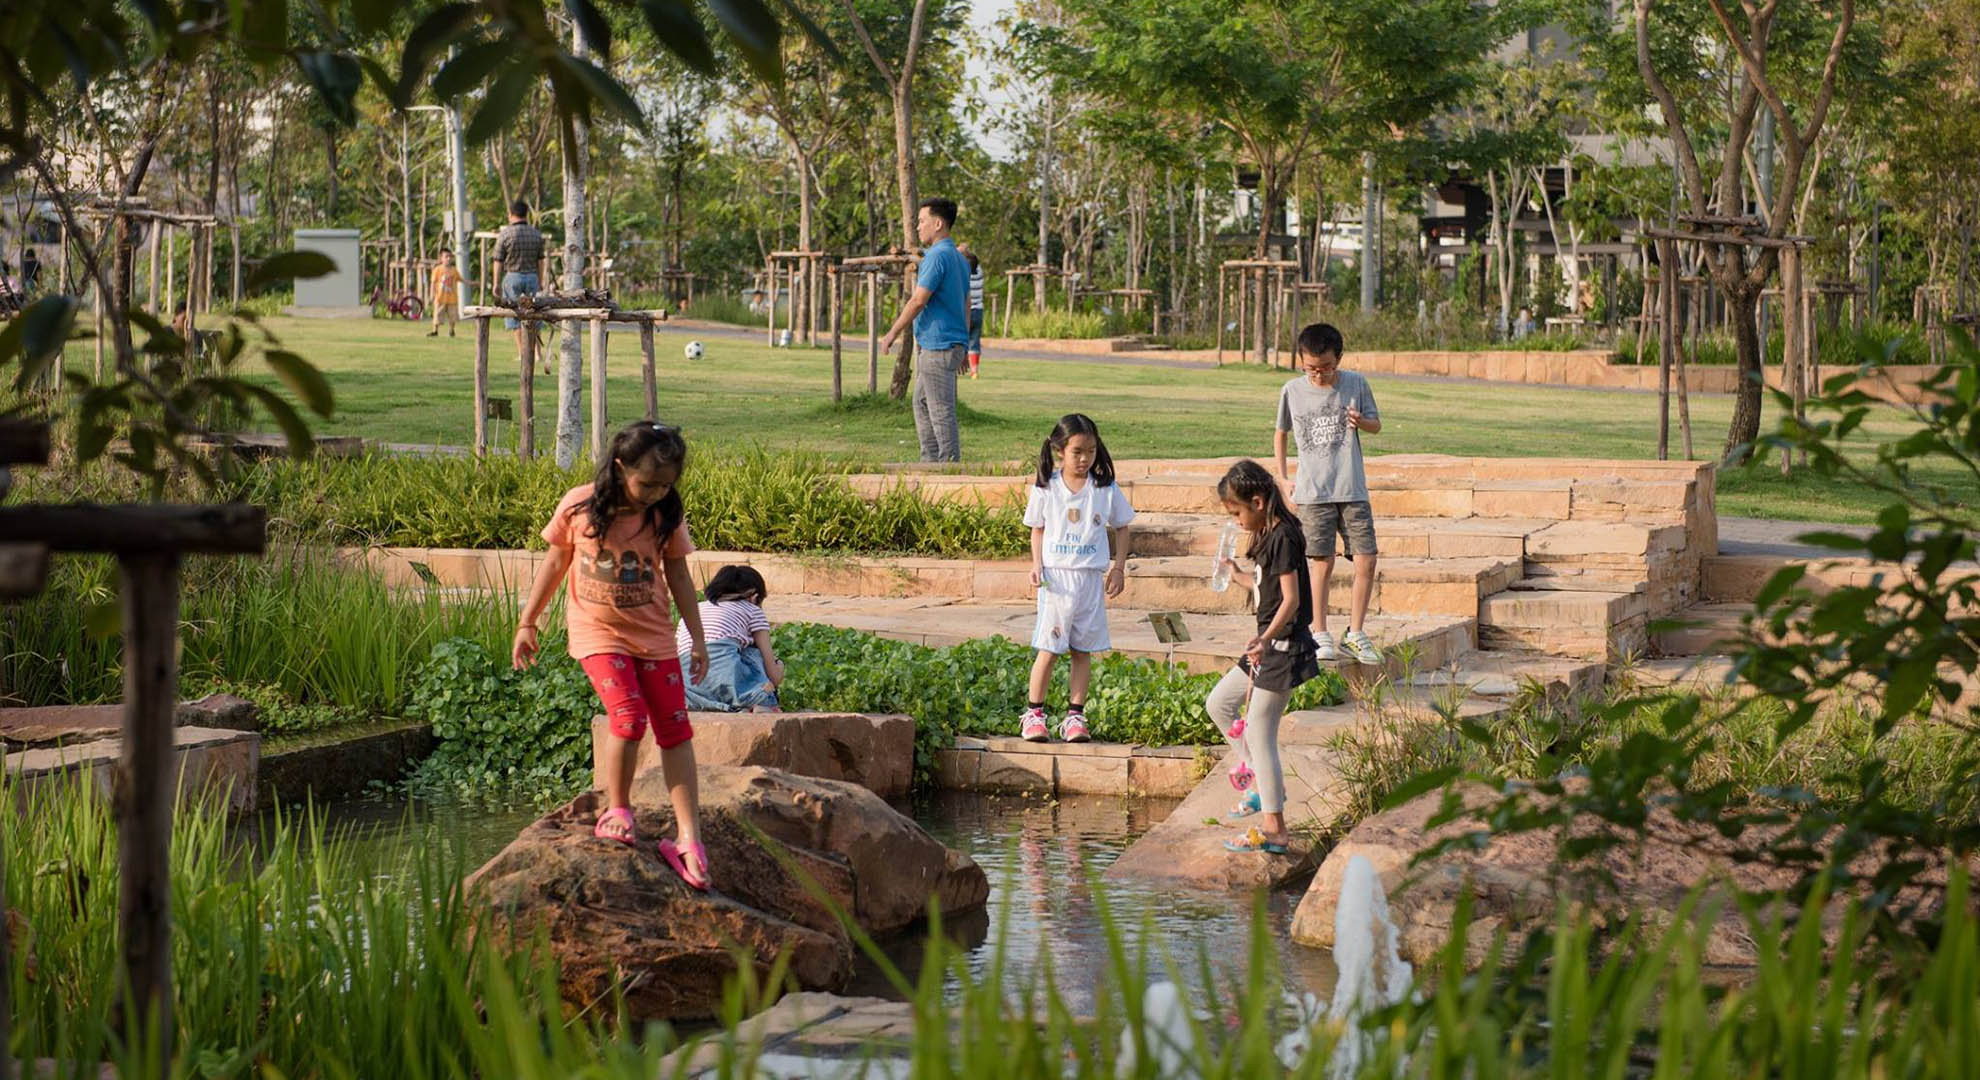 Green Spaces to Combat Climate Change